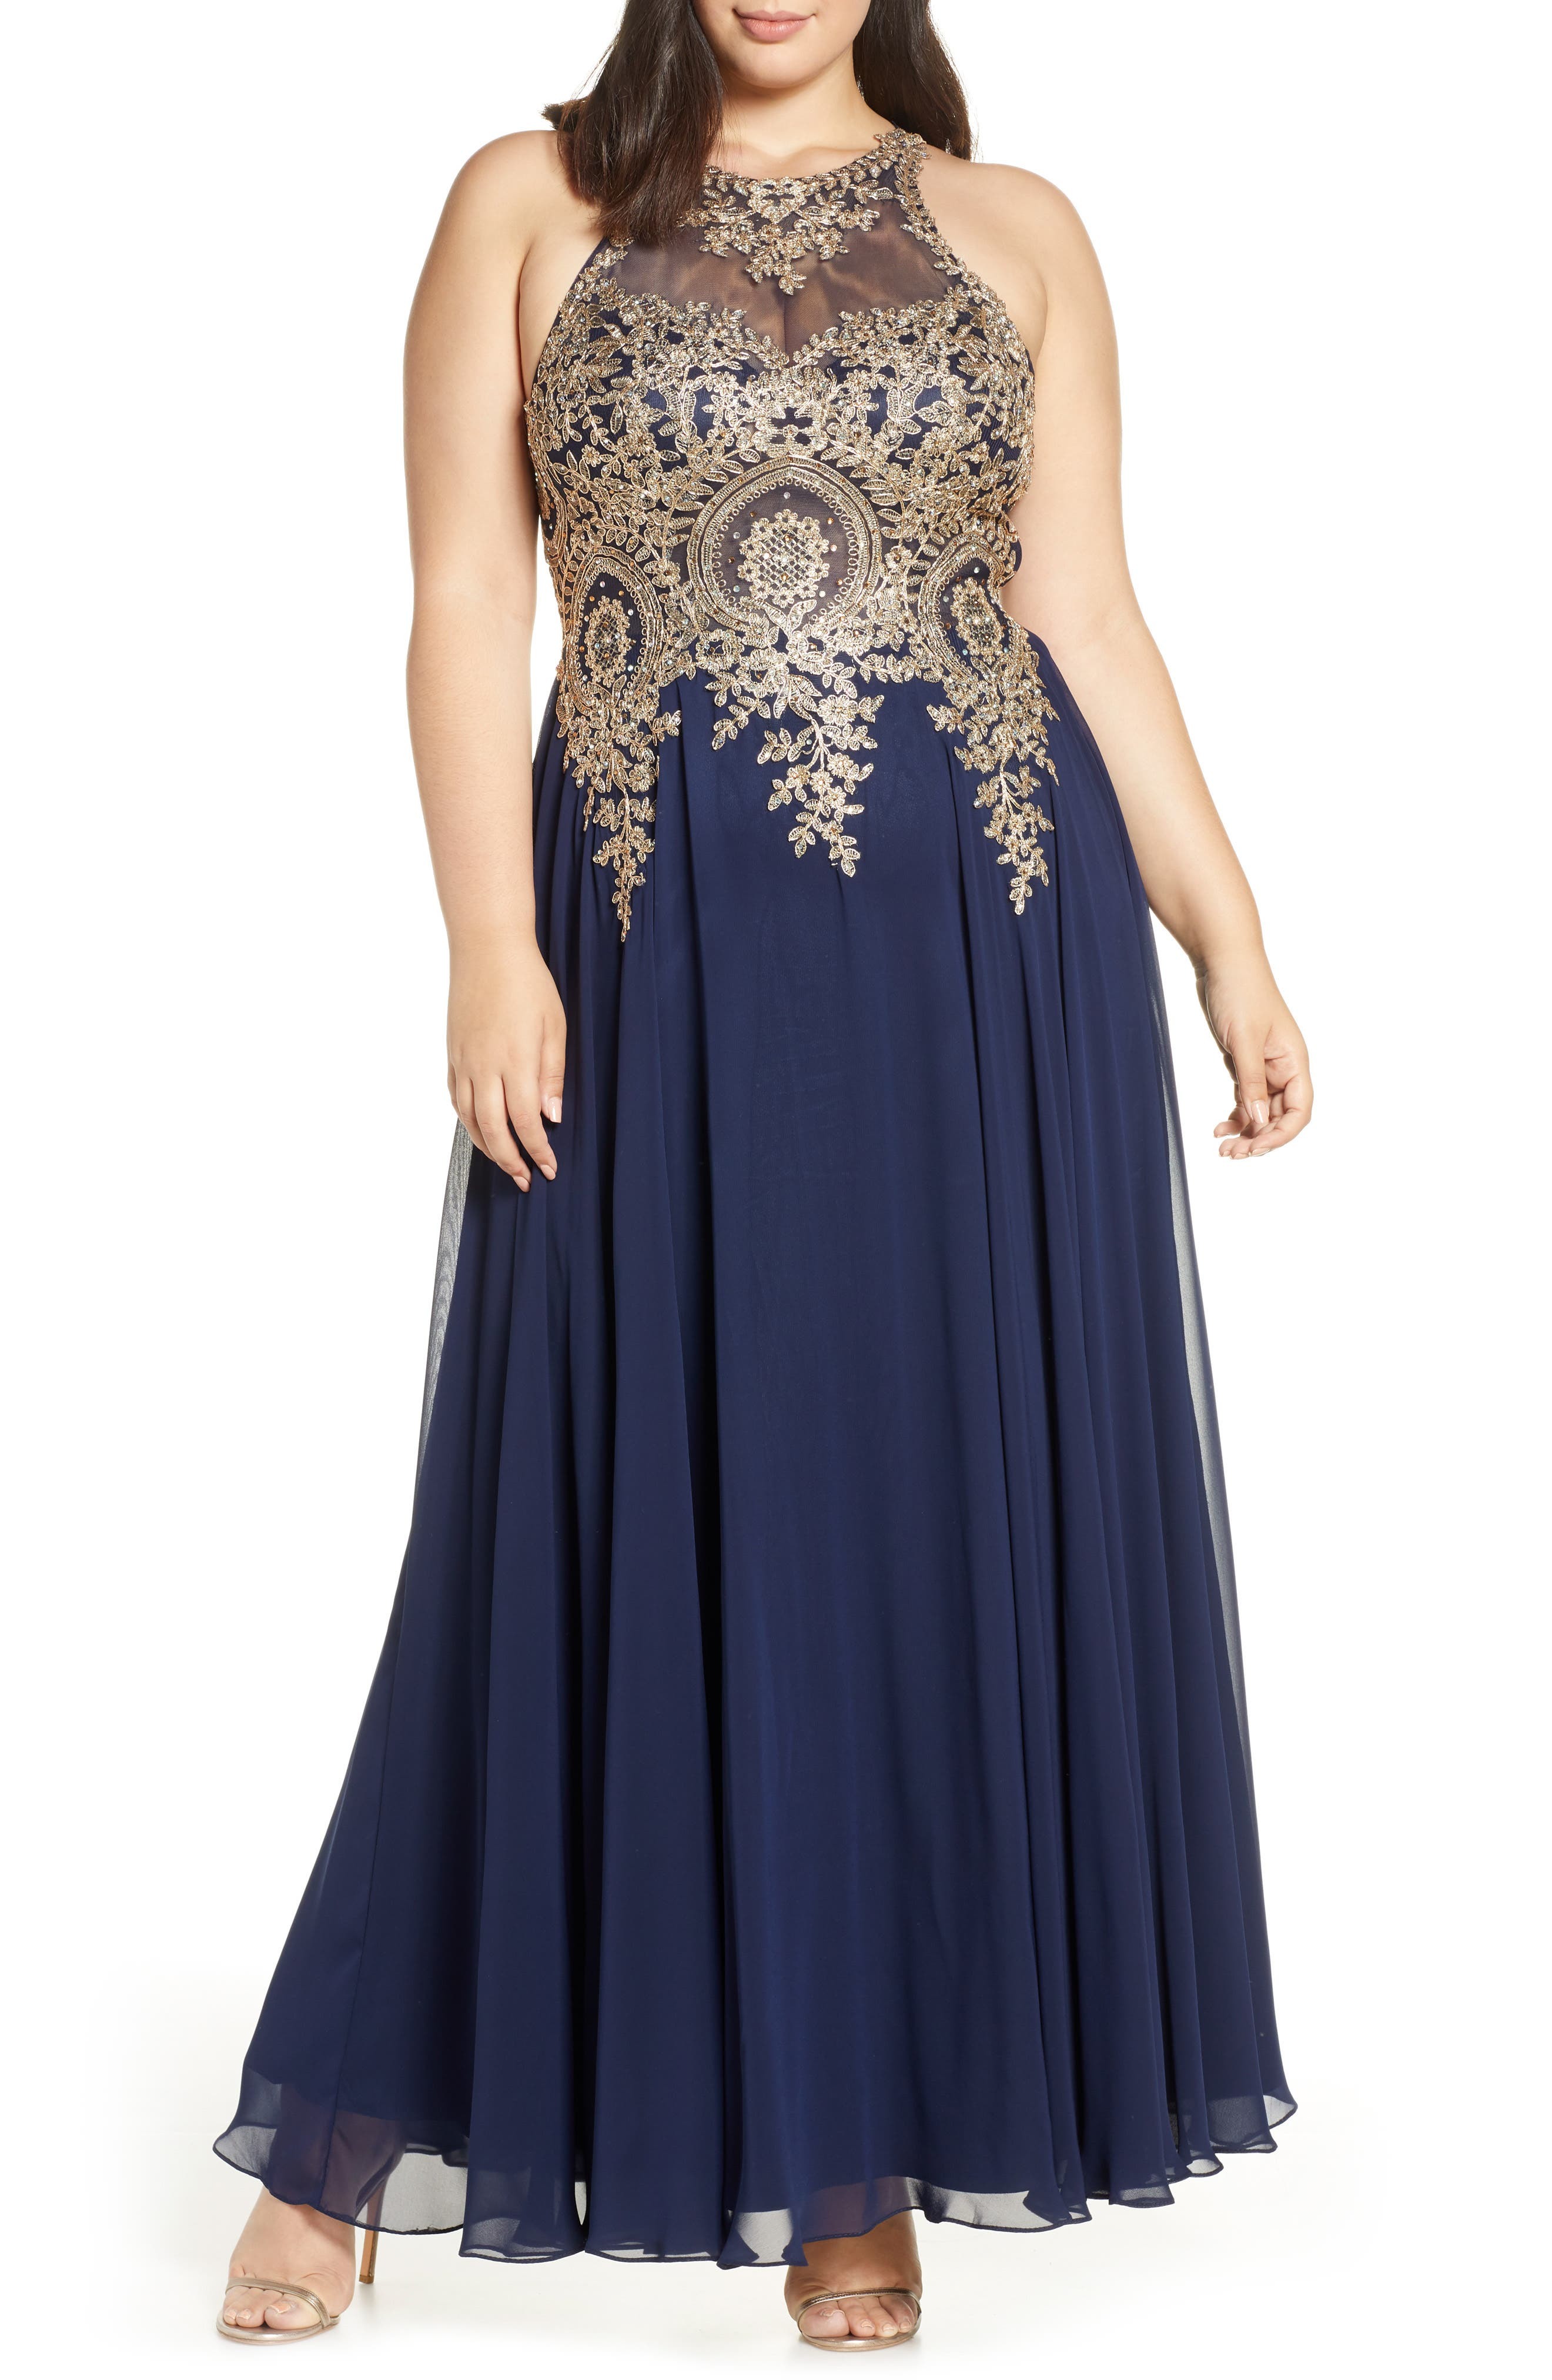 XSCAPE, Metallic Embroidered Gown, Main thumbnail 1, color, NAVY/ GOLD